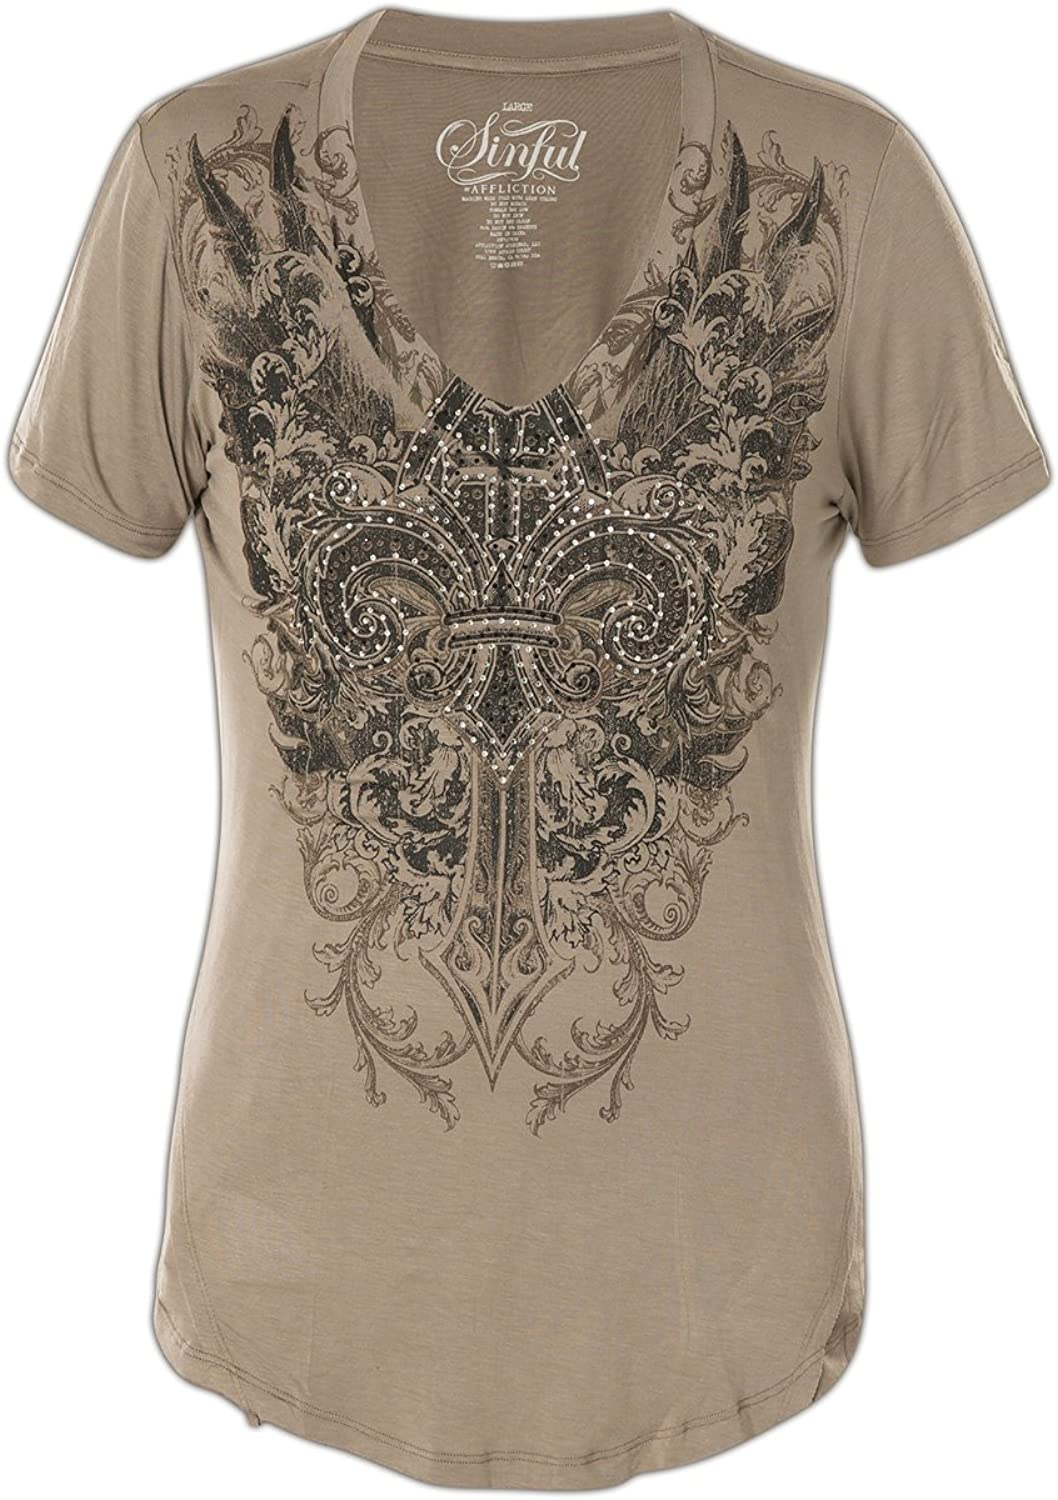 Sinful Caspian Manor Short Sleeve Graphic Fashion VNeck Tshirt Top By Affliction